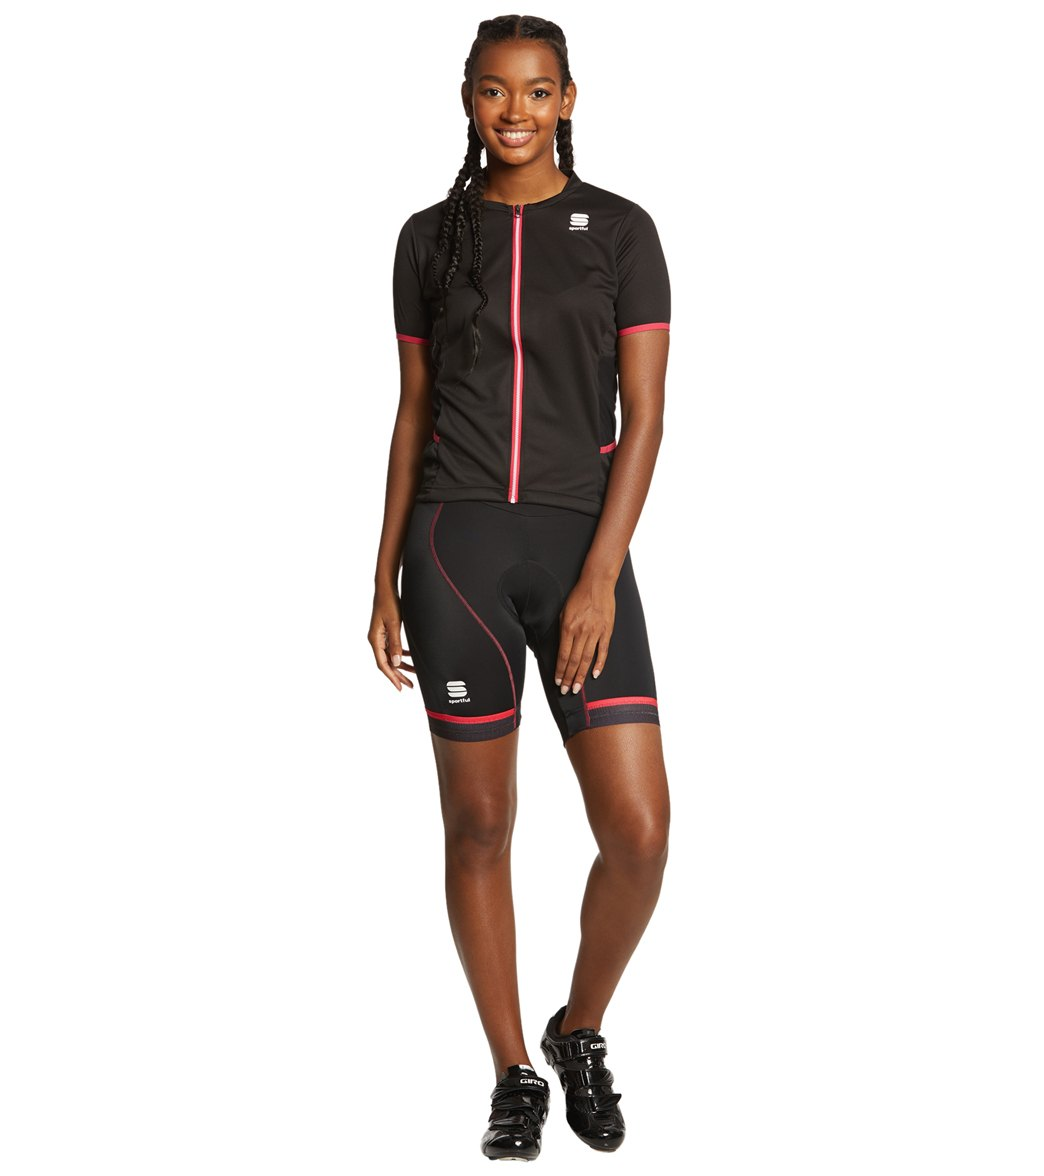 Sportful Women s Luna Cycling Jersey at SwimOutlet.com - Free Shipping 33e77aeee